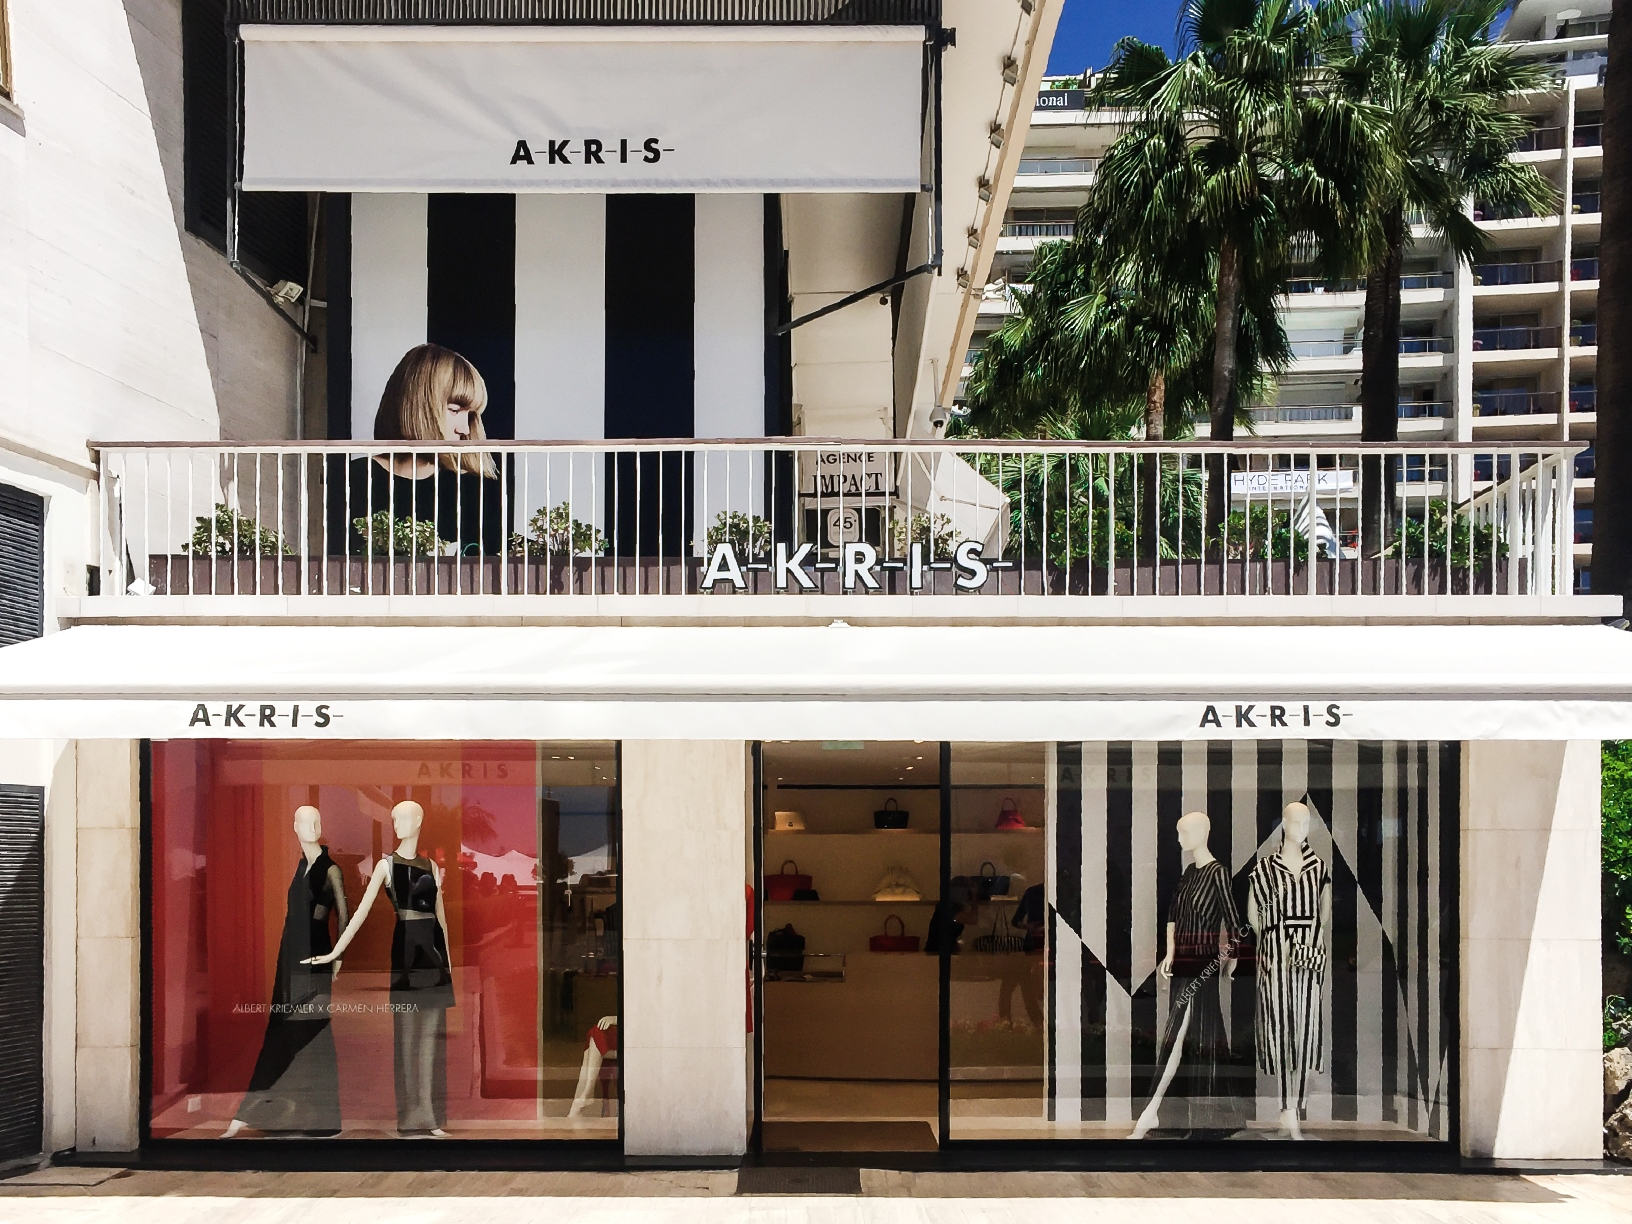 la maison de mode akris ouvre une boutique cannes riviera magazine. Black Bedroom Furniture Sets. Home Design Ideas